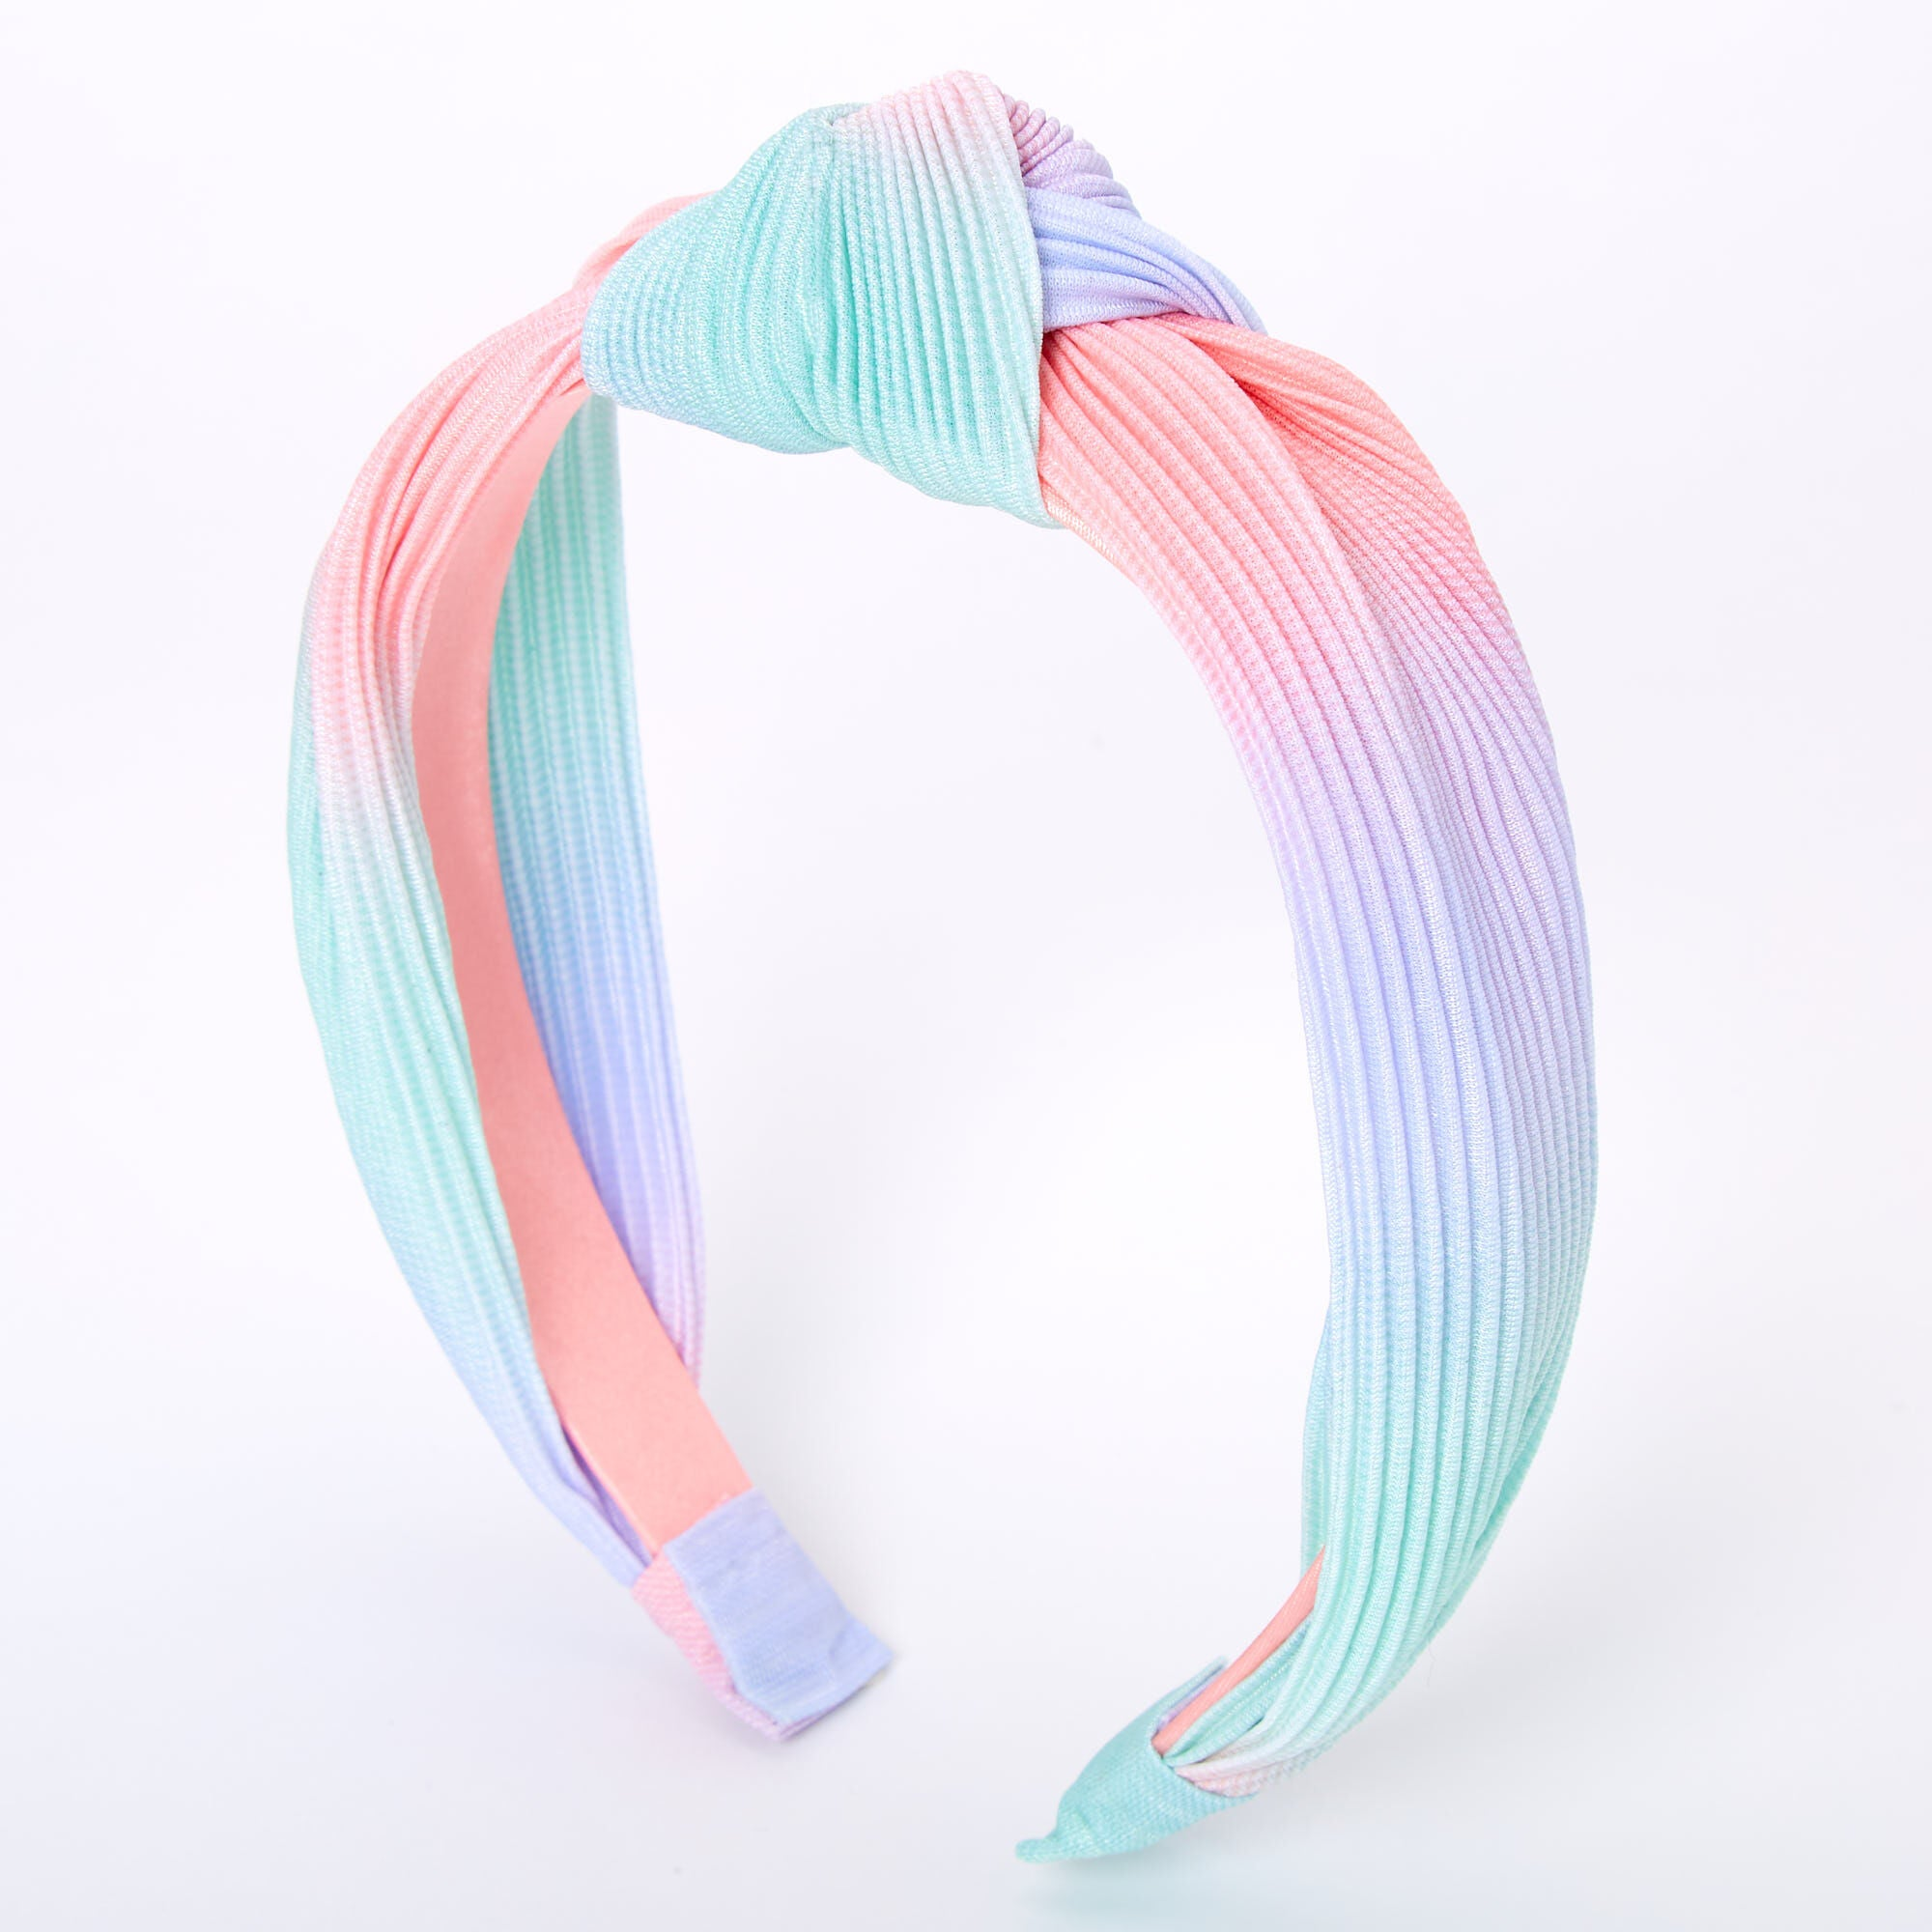 Claire's Pleated Pastel Ombre Knotted Headband